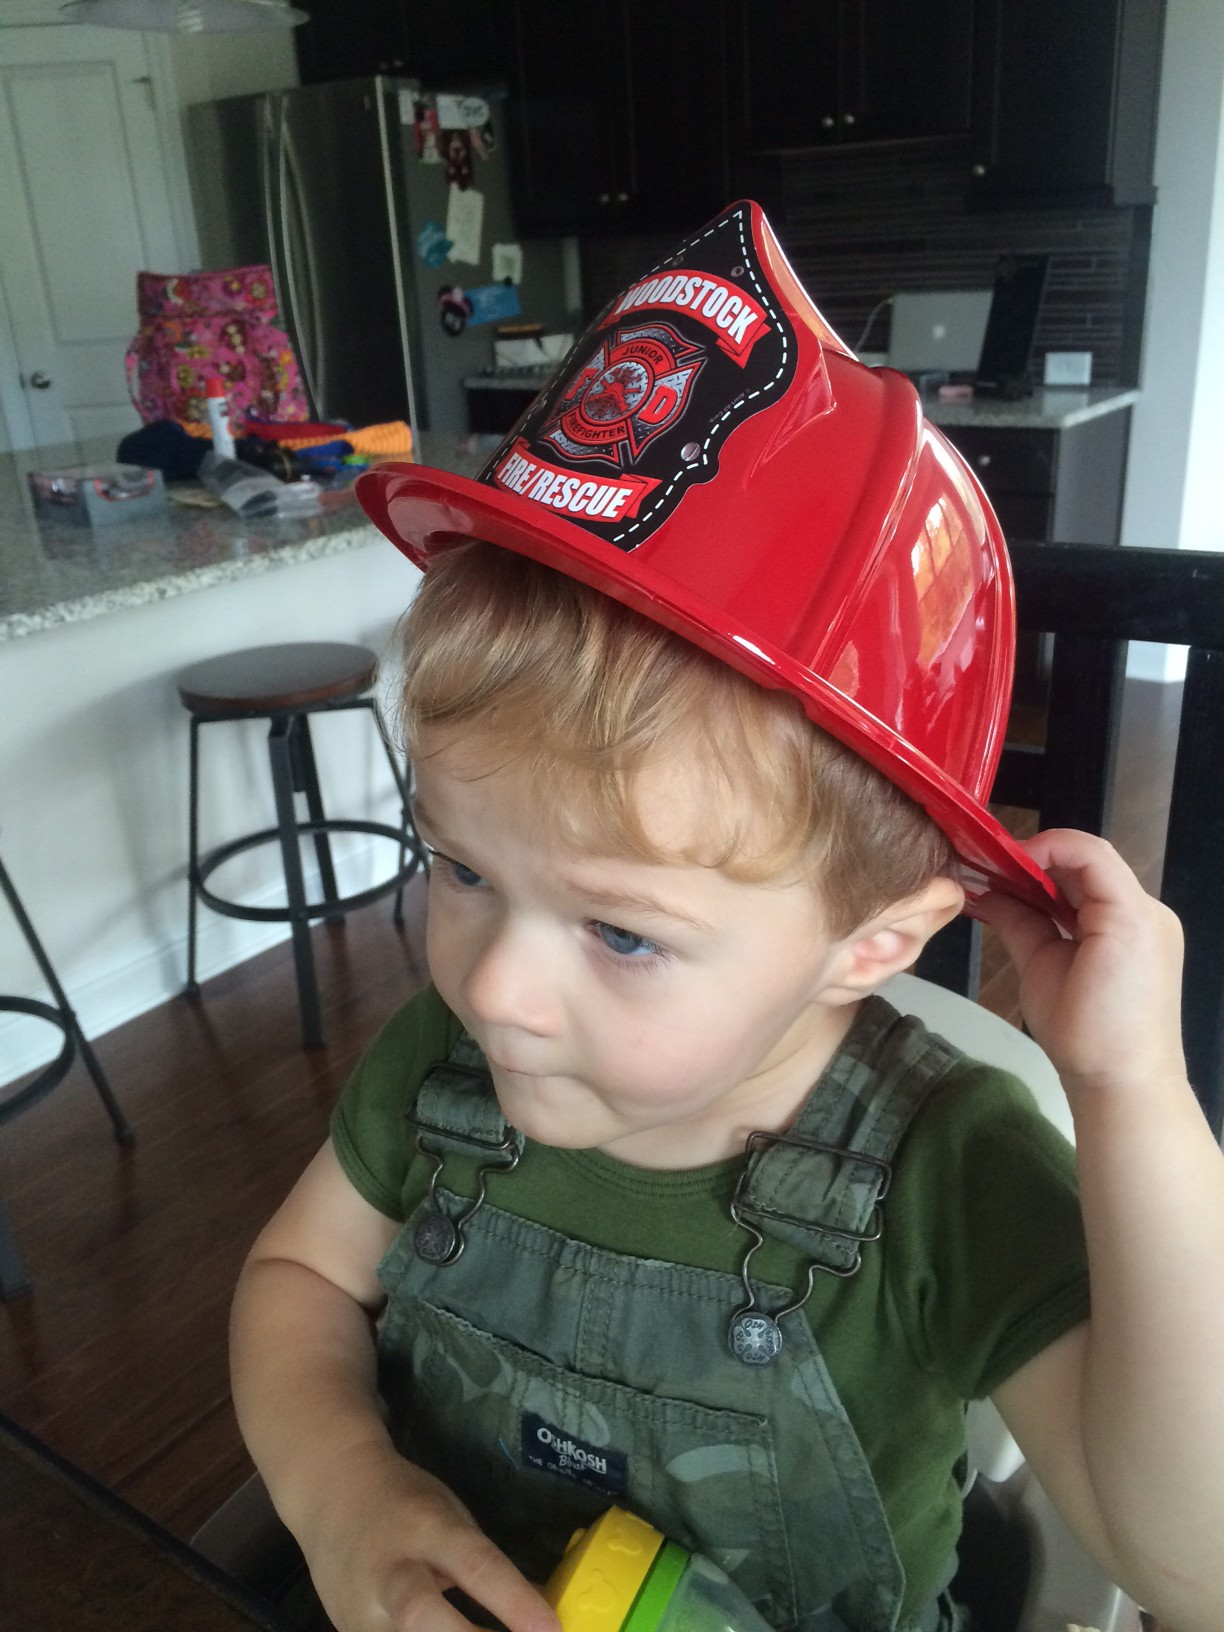 Clearly, he was impressed by our local fire department!